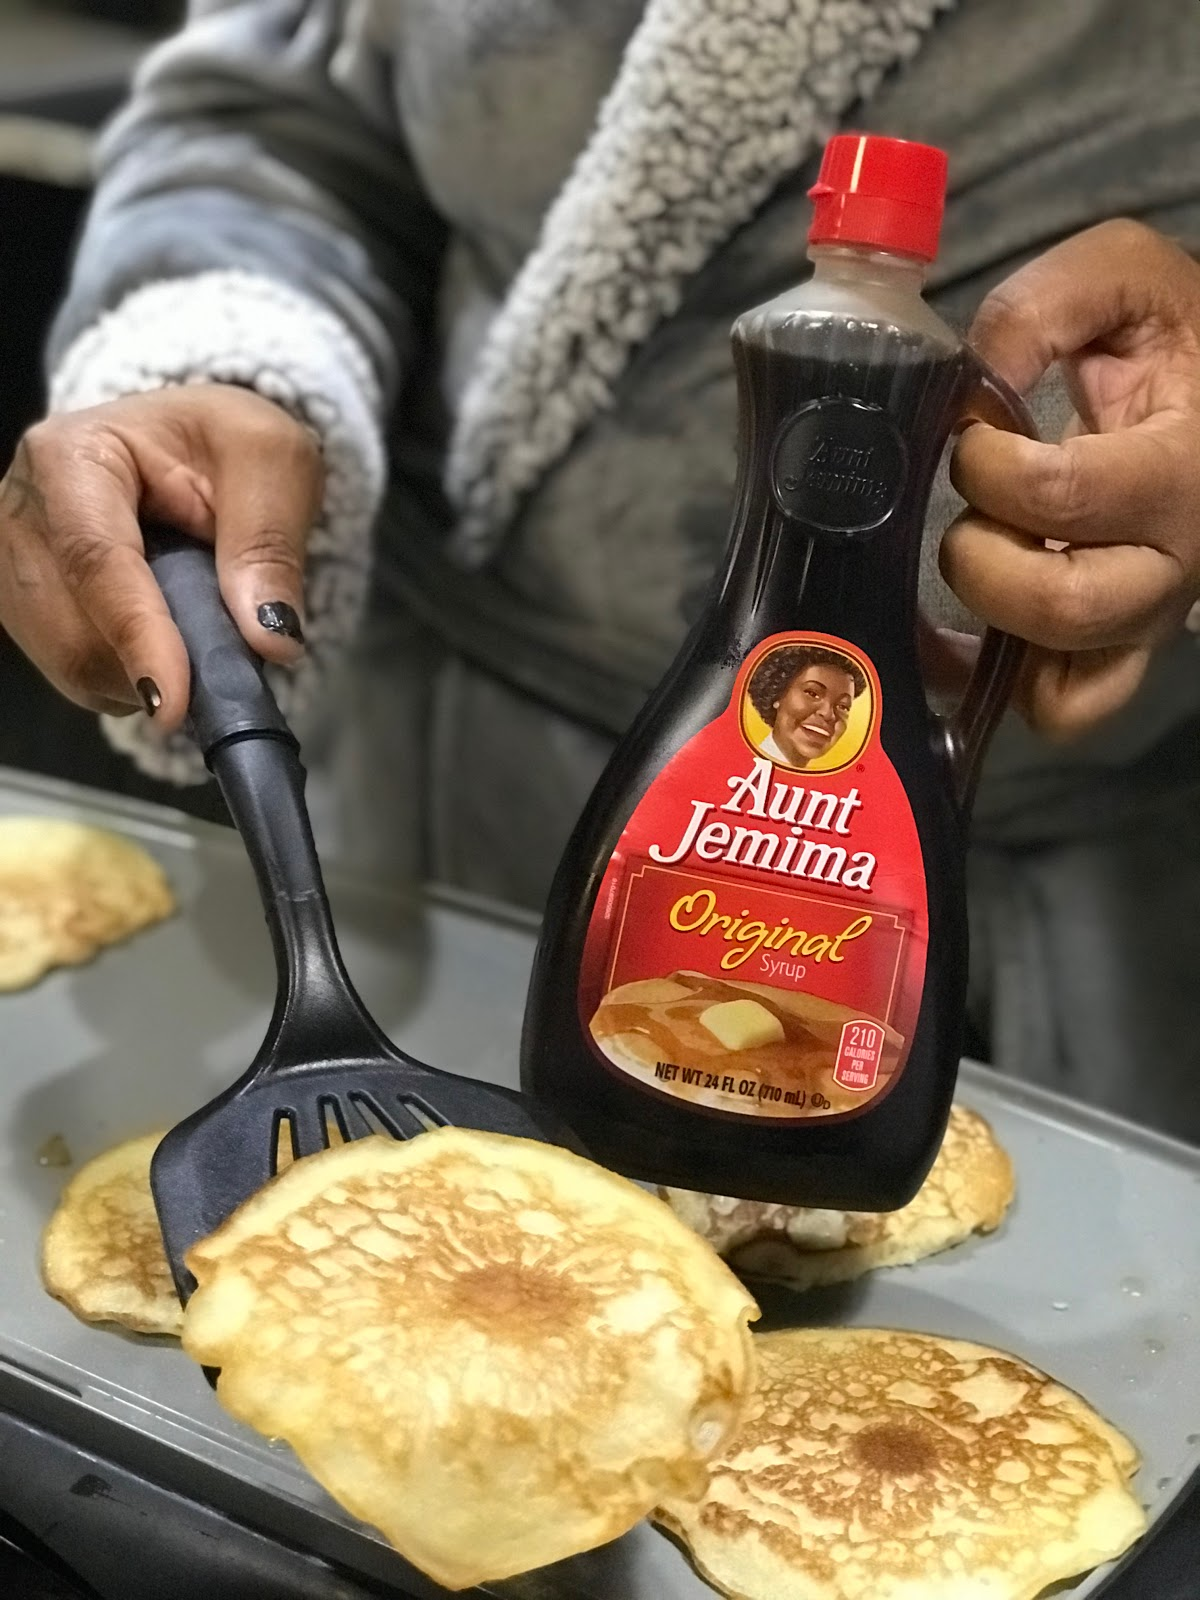 Image: Tangie Bell cooking more pancakes and using aunt jemima syrup. Not sponsored